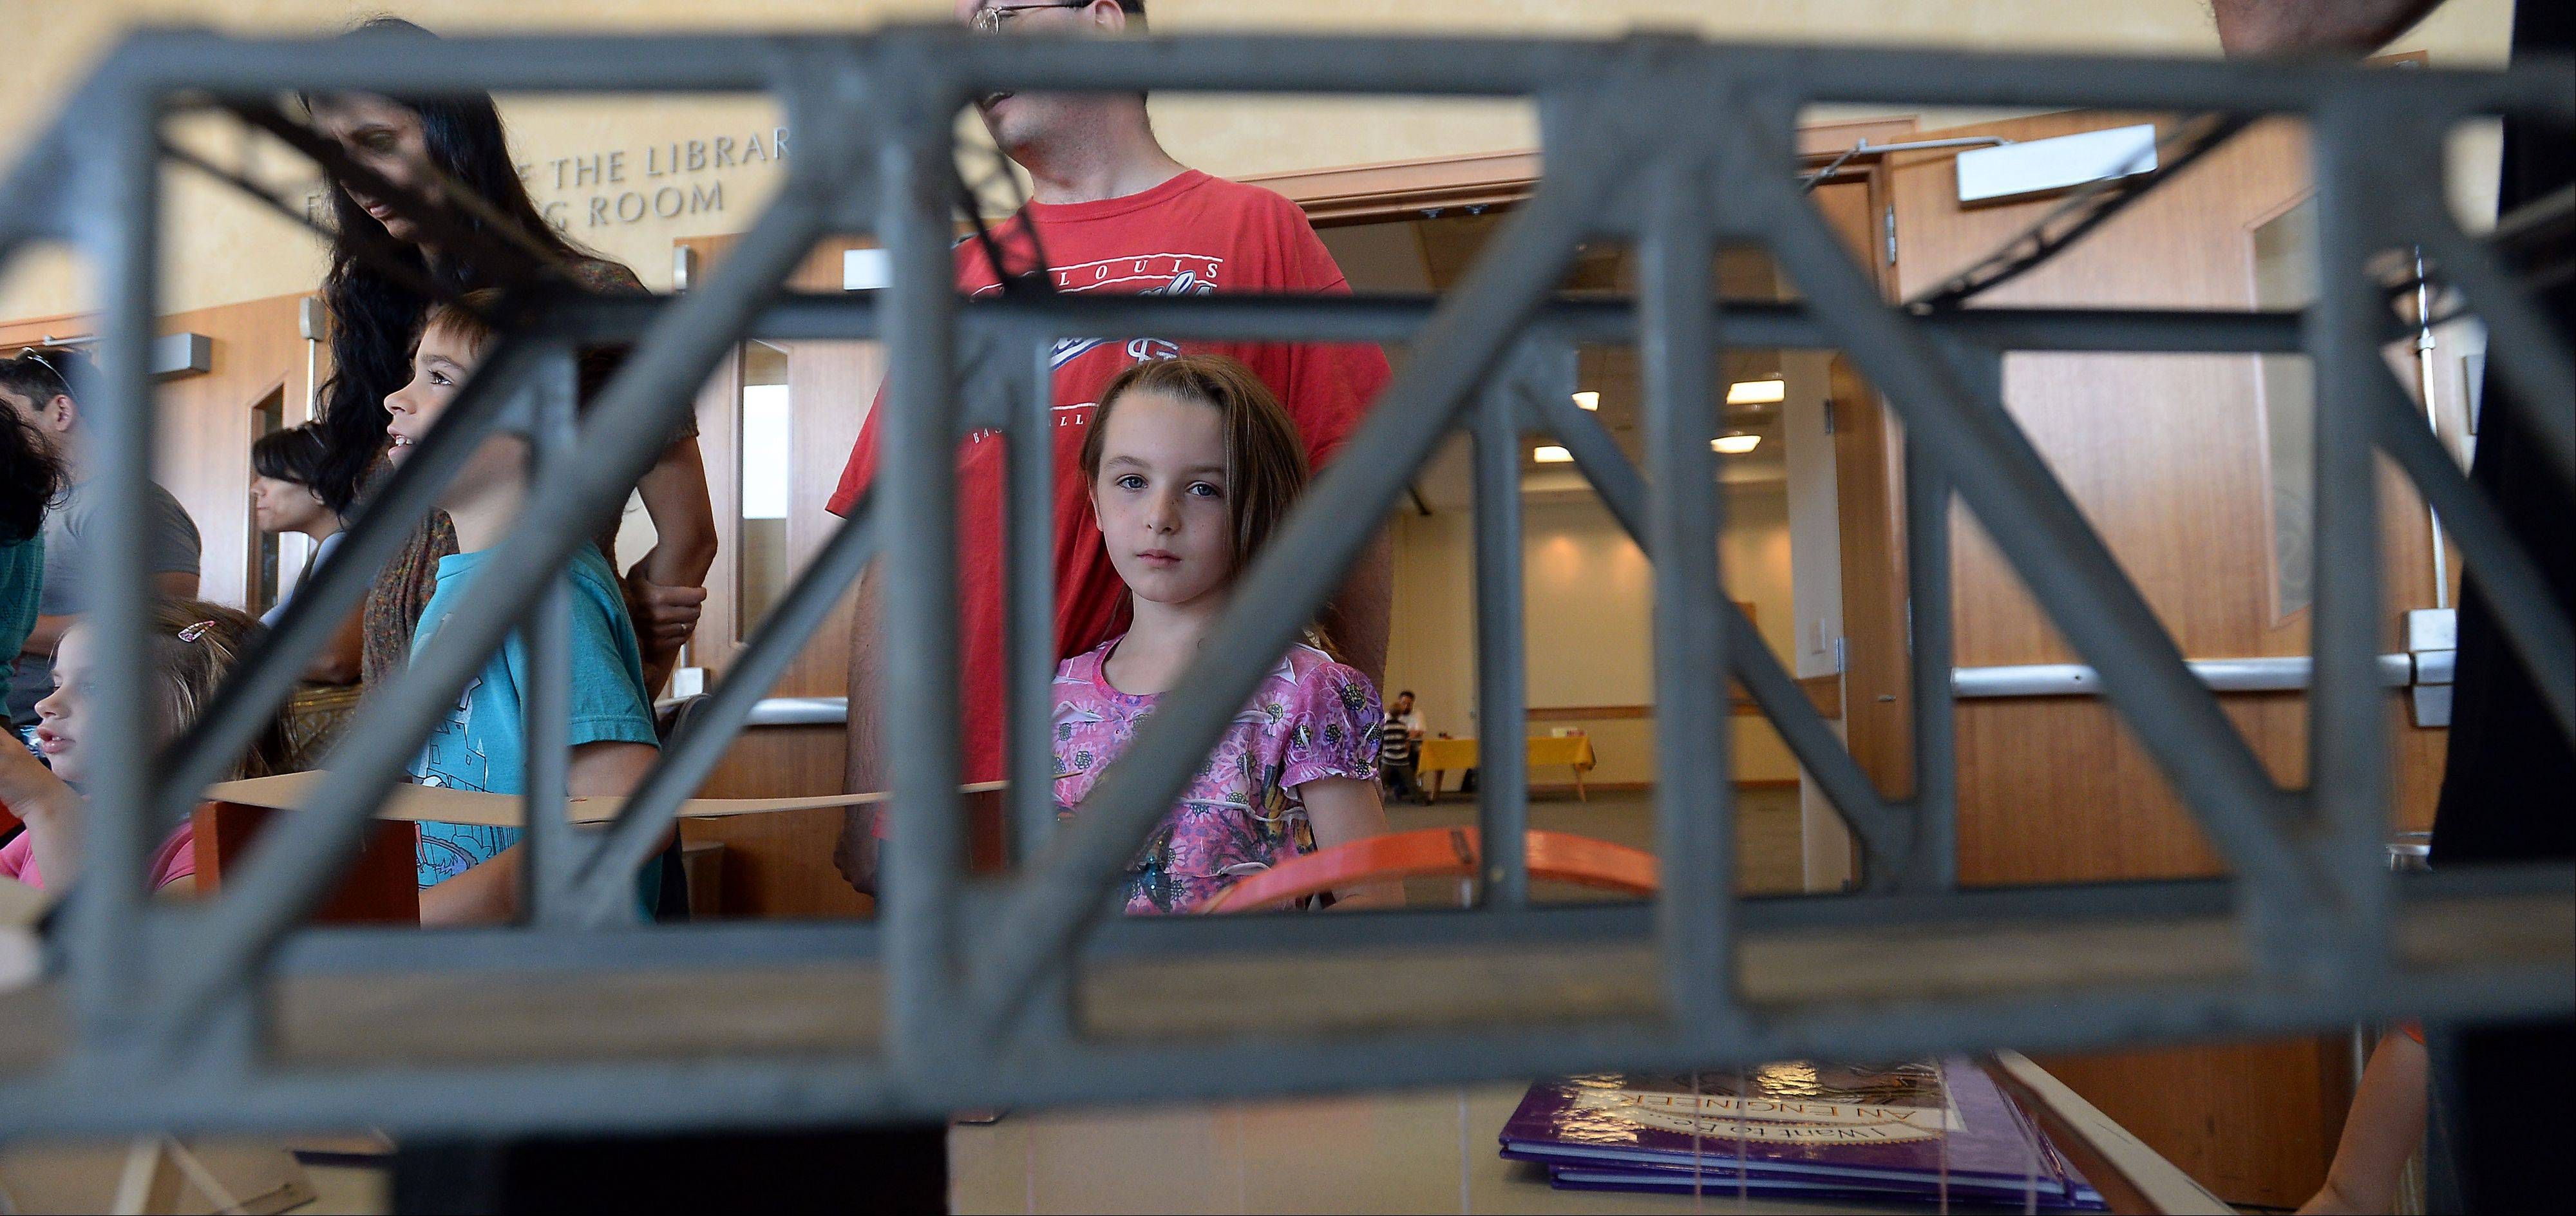 Jora Usher, 6, of Rolling Meadows looks at one of the bridge designs at the fifth-annual Family Science Expo at the Des Plaines Public Library Saturday.